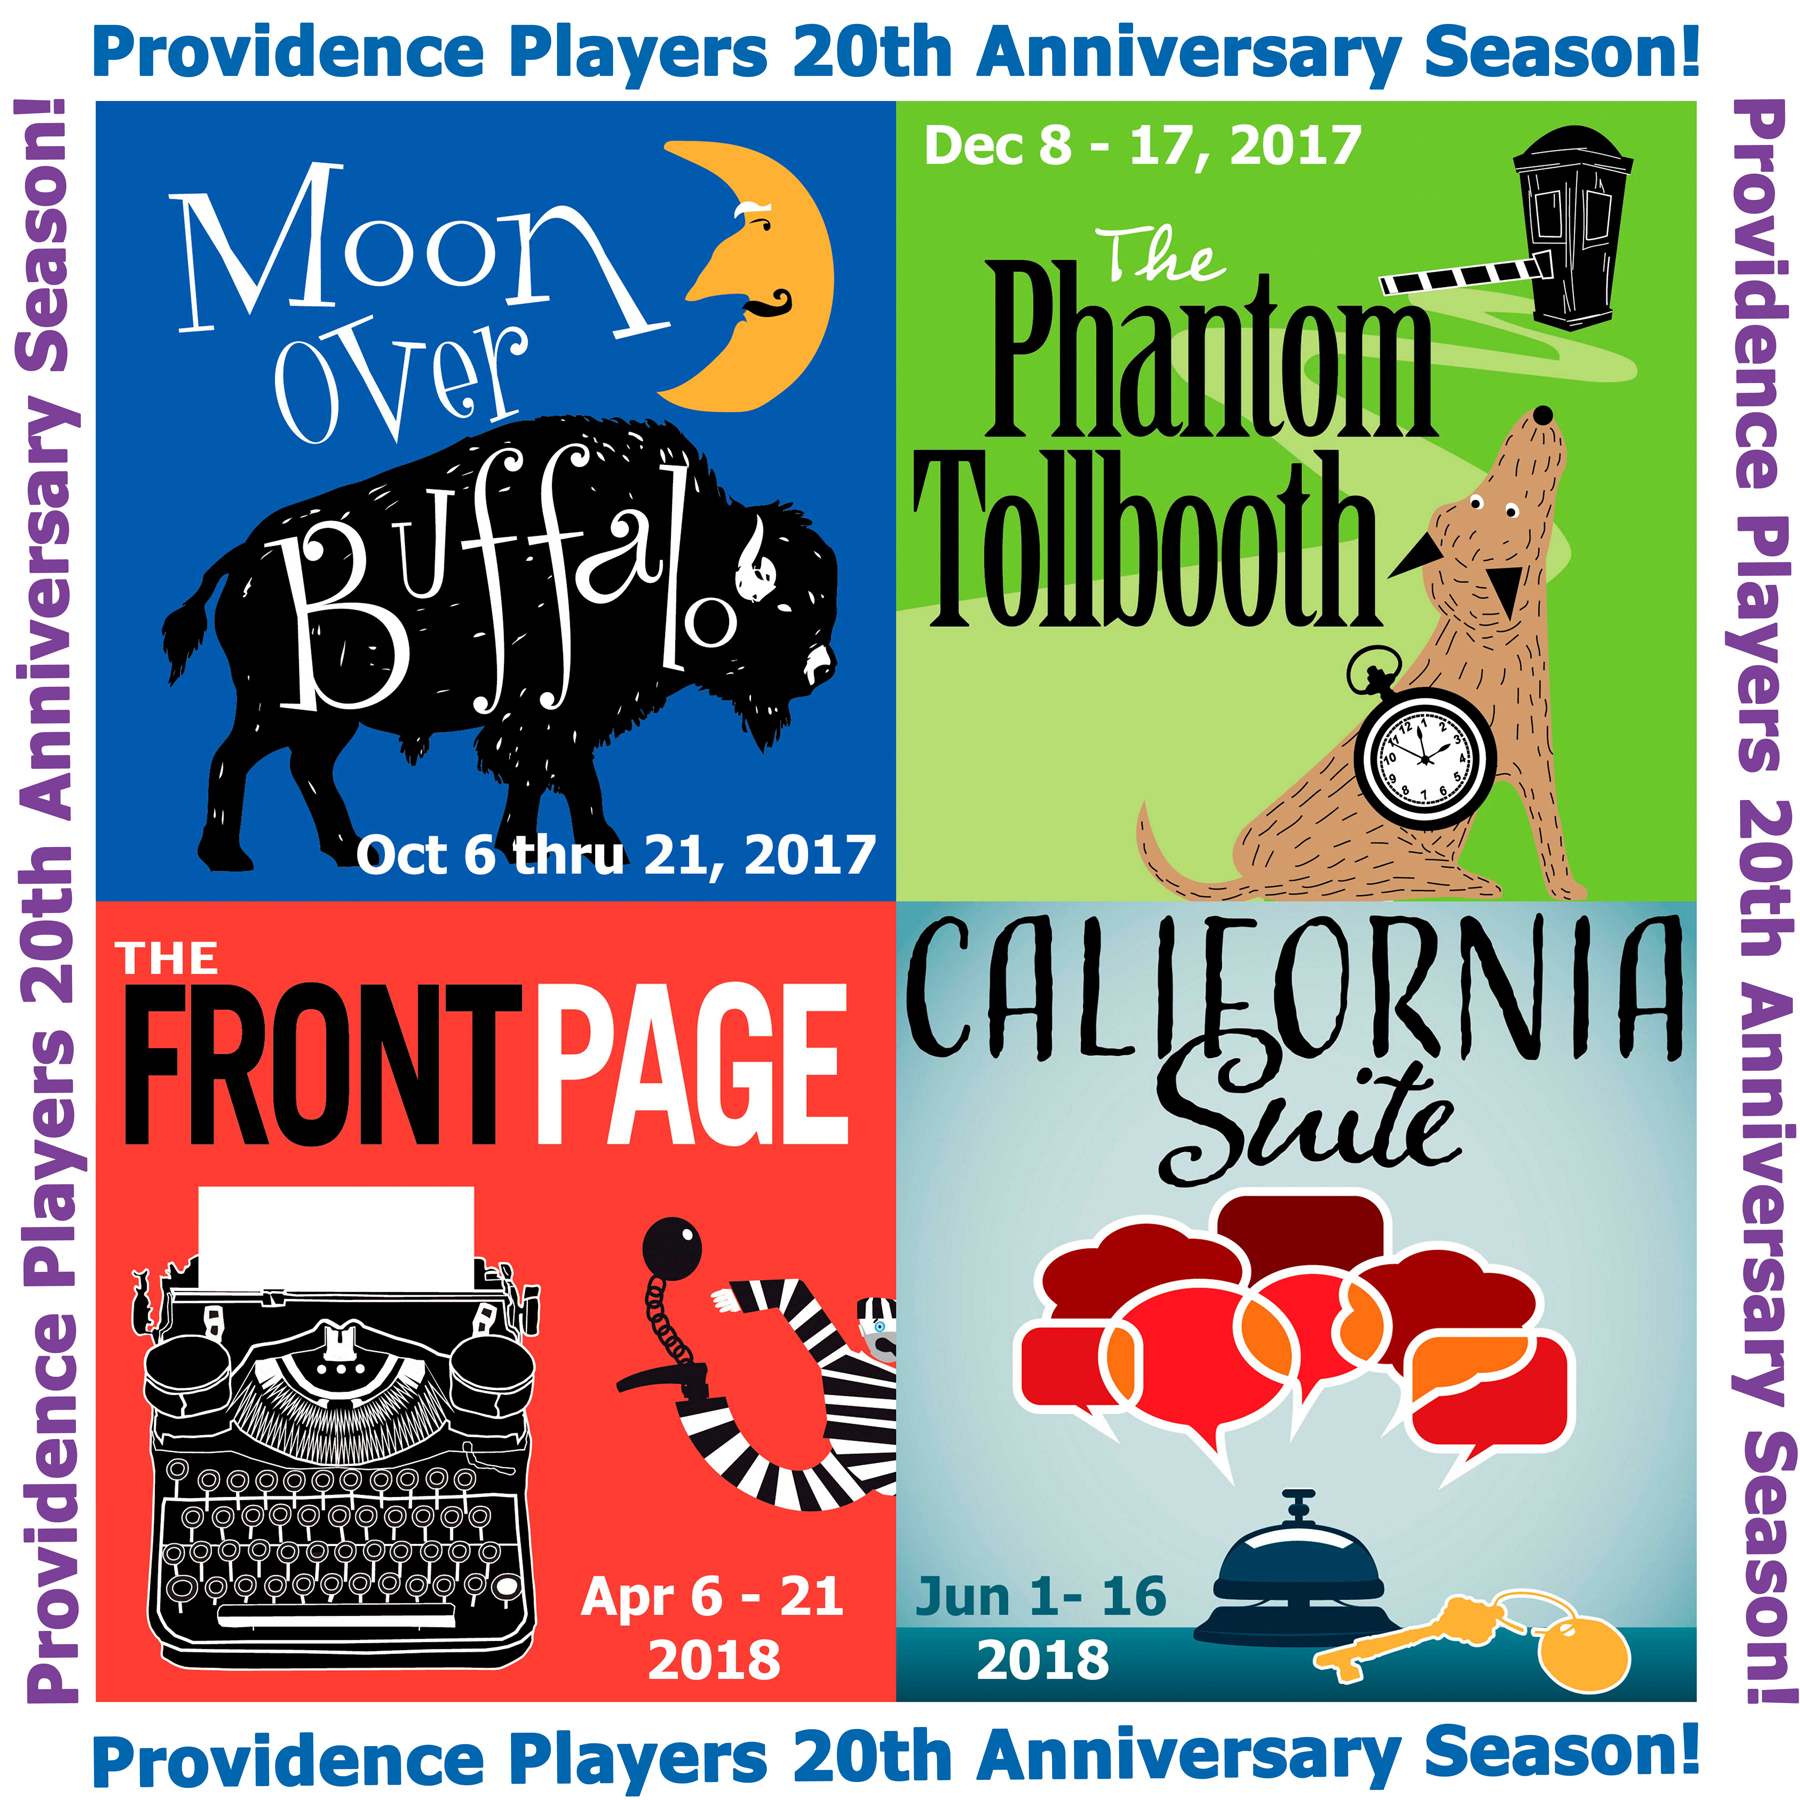 Providence Players 20th Anniversary Season